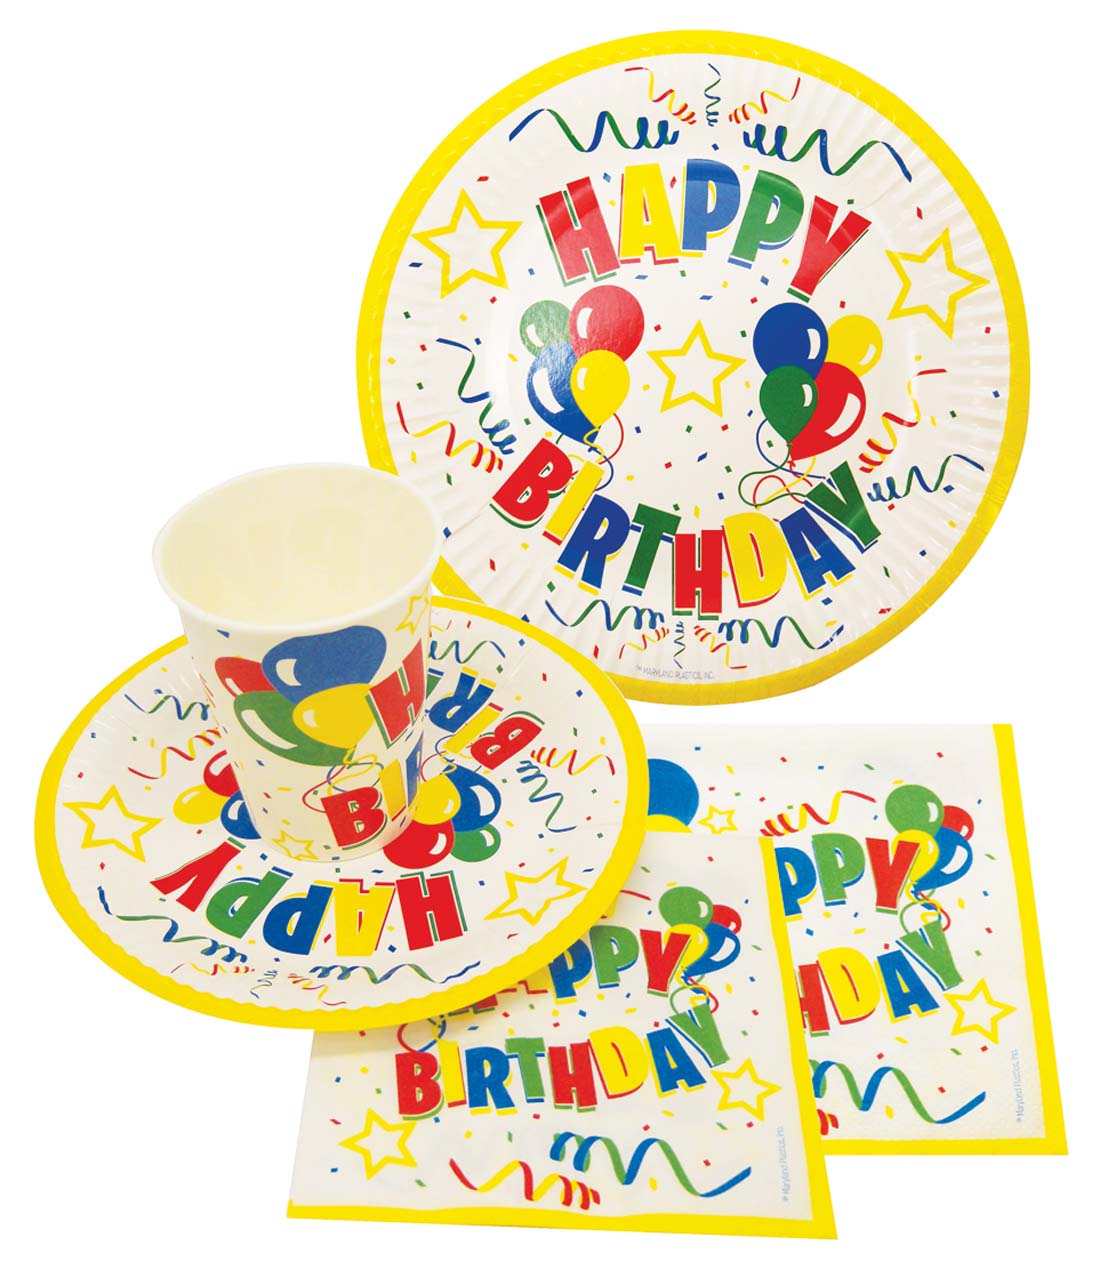 View BIRTHDAY PARTY SET IN DISPLAY (8 COUNT 9 INCH PLATE 8 COUNT 7 INCH PLATE8 COUNT 9 OUNCE CUPS 20 LARGE NAPKIN 20 SMALL NAPKIN)